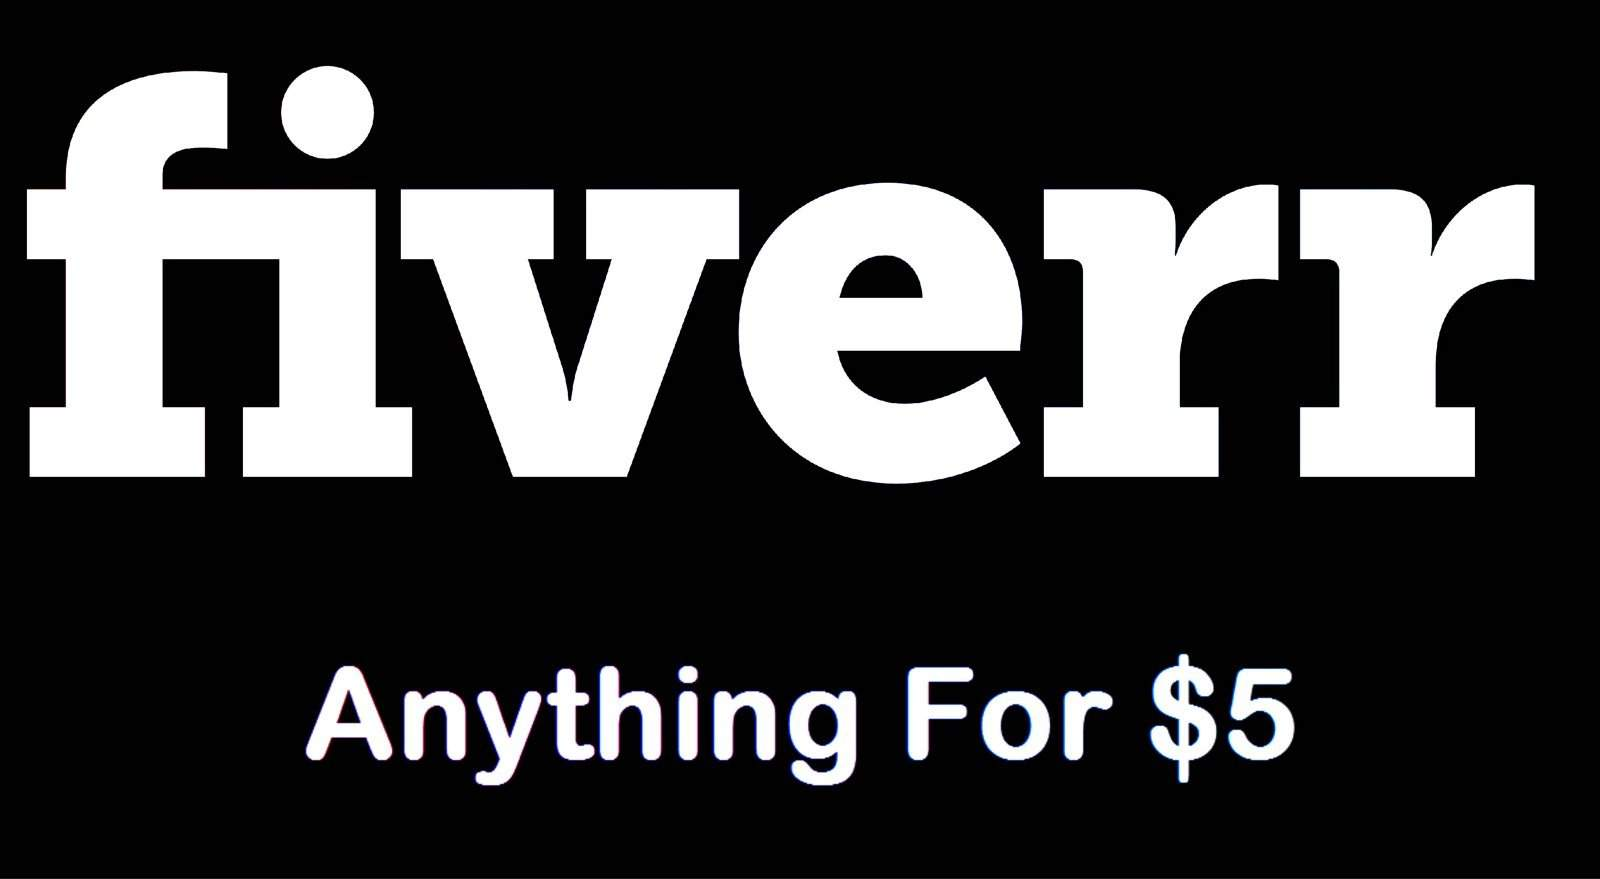 The Ultimate Fiverr Review 1 Fiverr Review